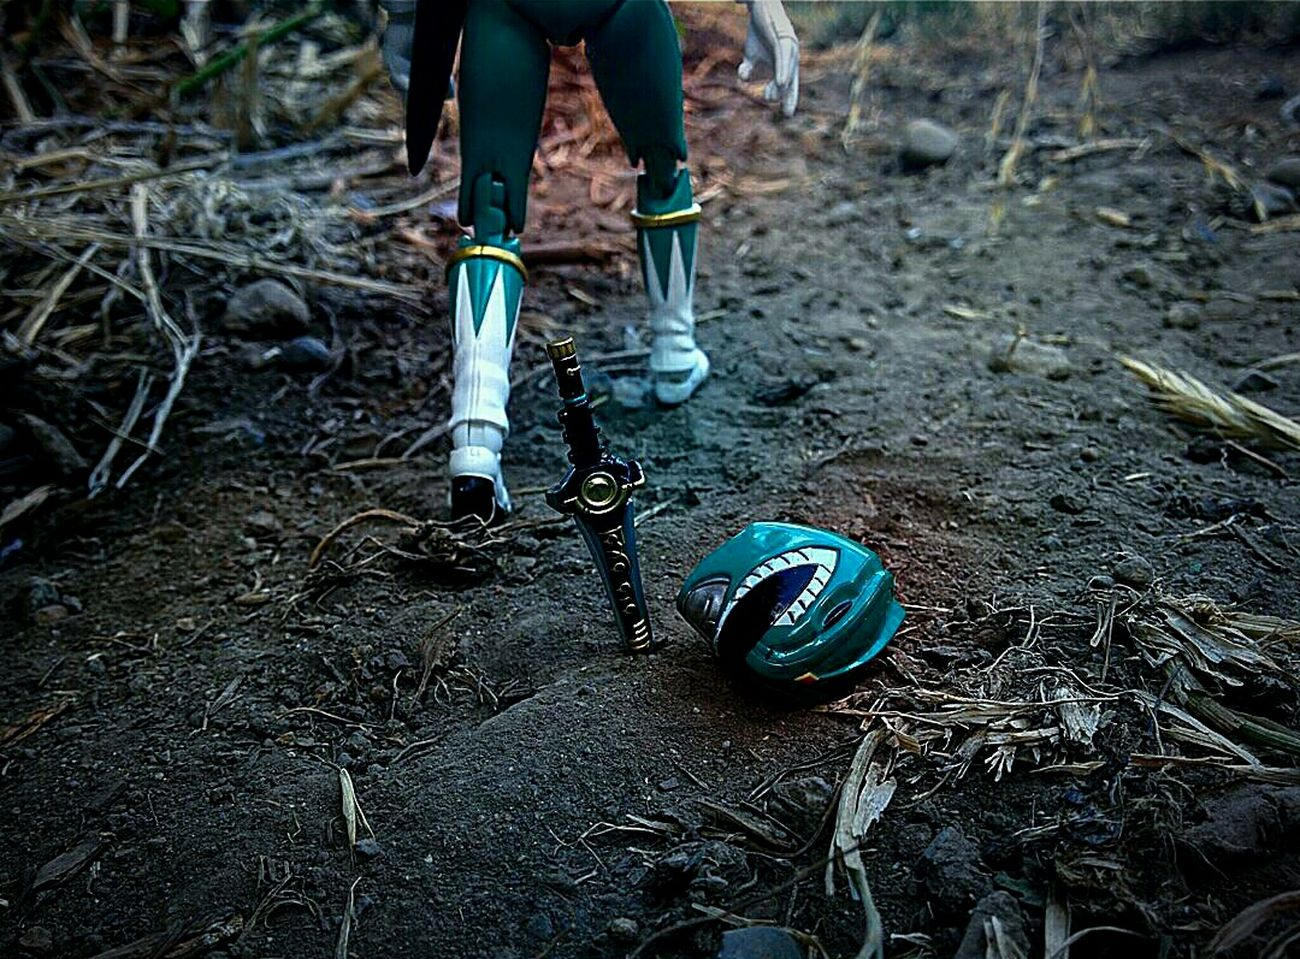 """You win Rita.....I quit."" Power Rangers Toy Photography The Week On EyeEm"